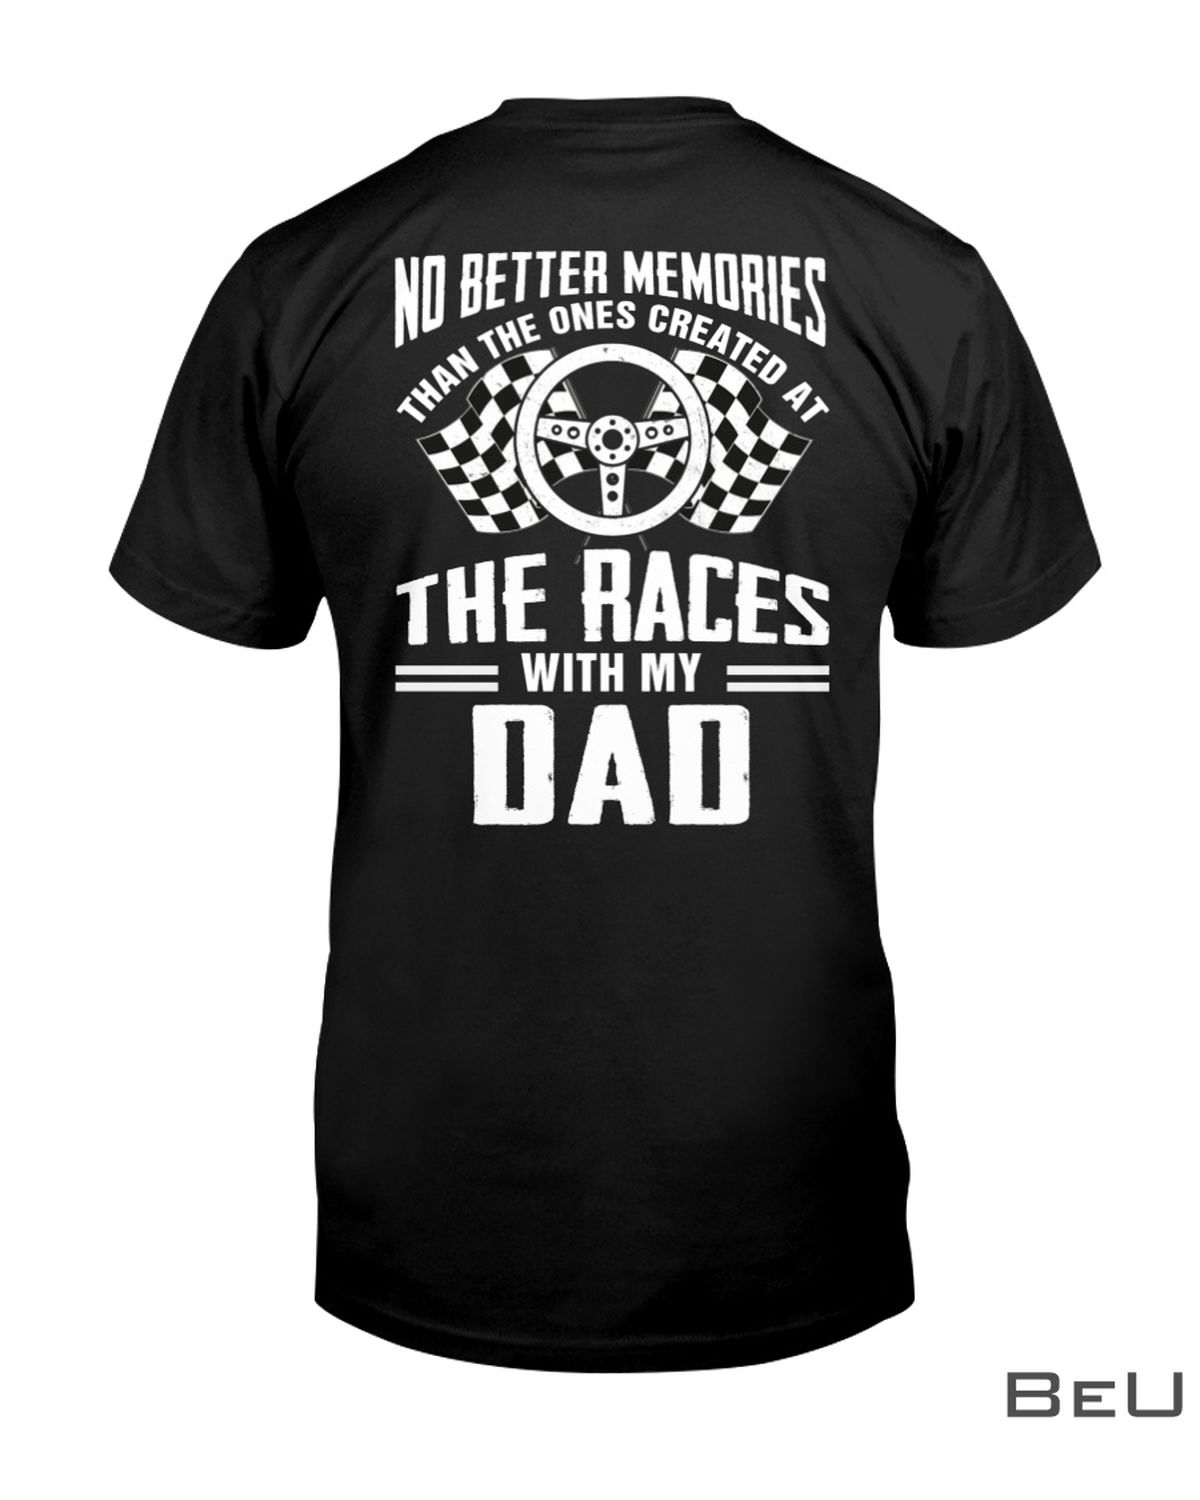 Stock Car Racing No Better Memories Than The Ones Created At The Races With My Dad Shirt